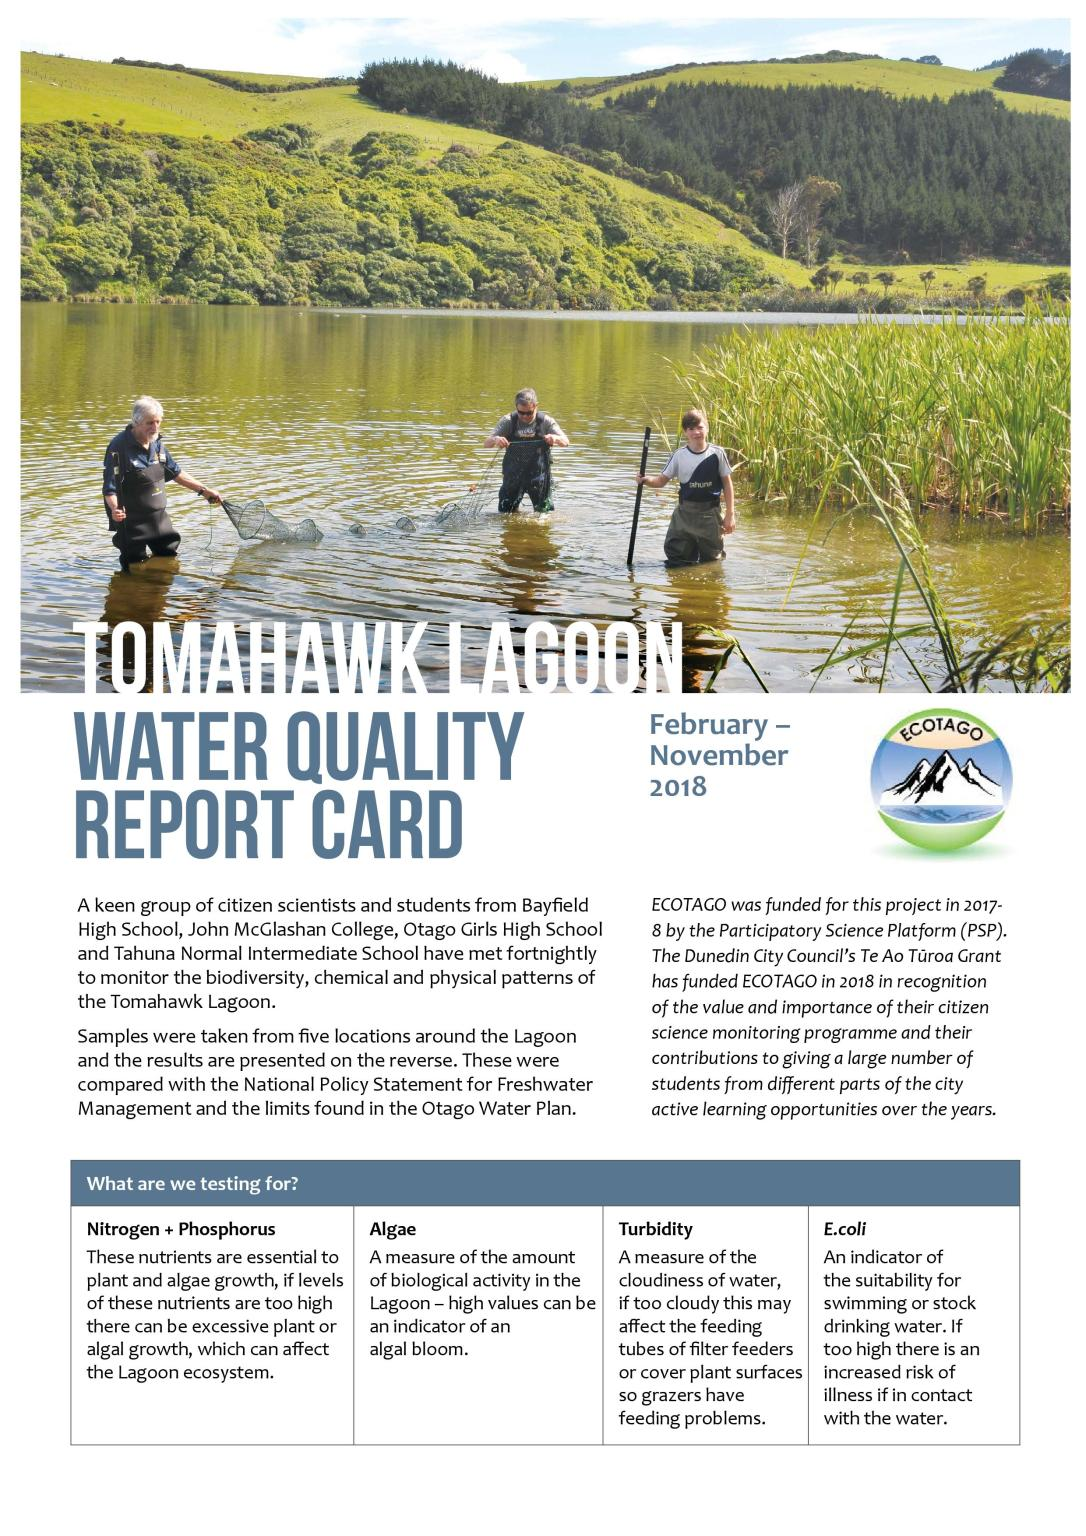 Tomahawk Lagoon Water Quality Report Card 2018 v4-page-001